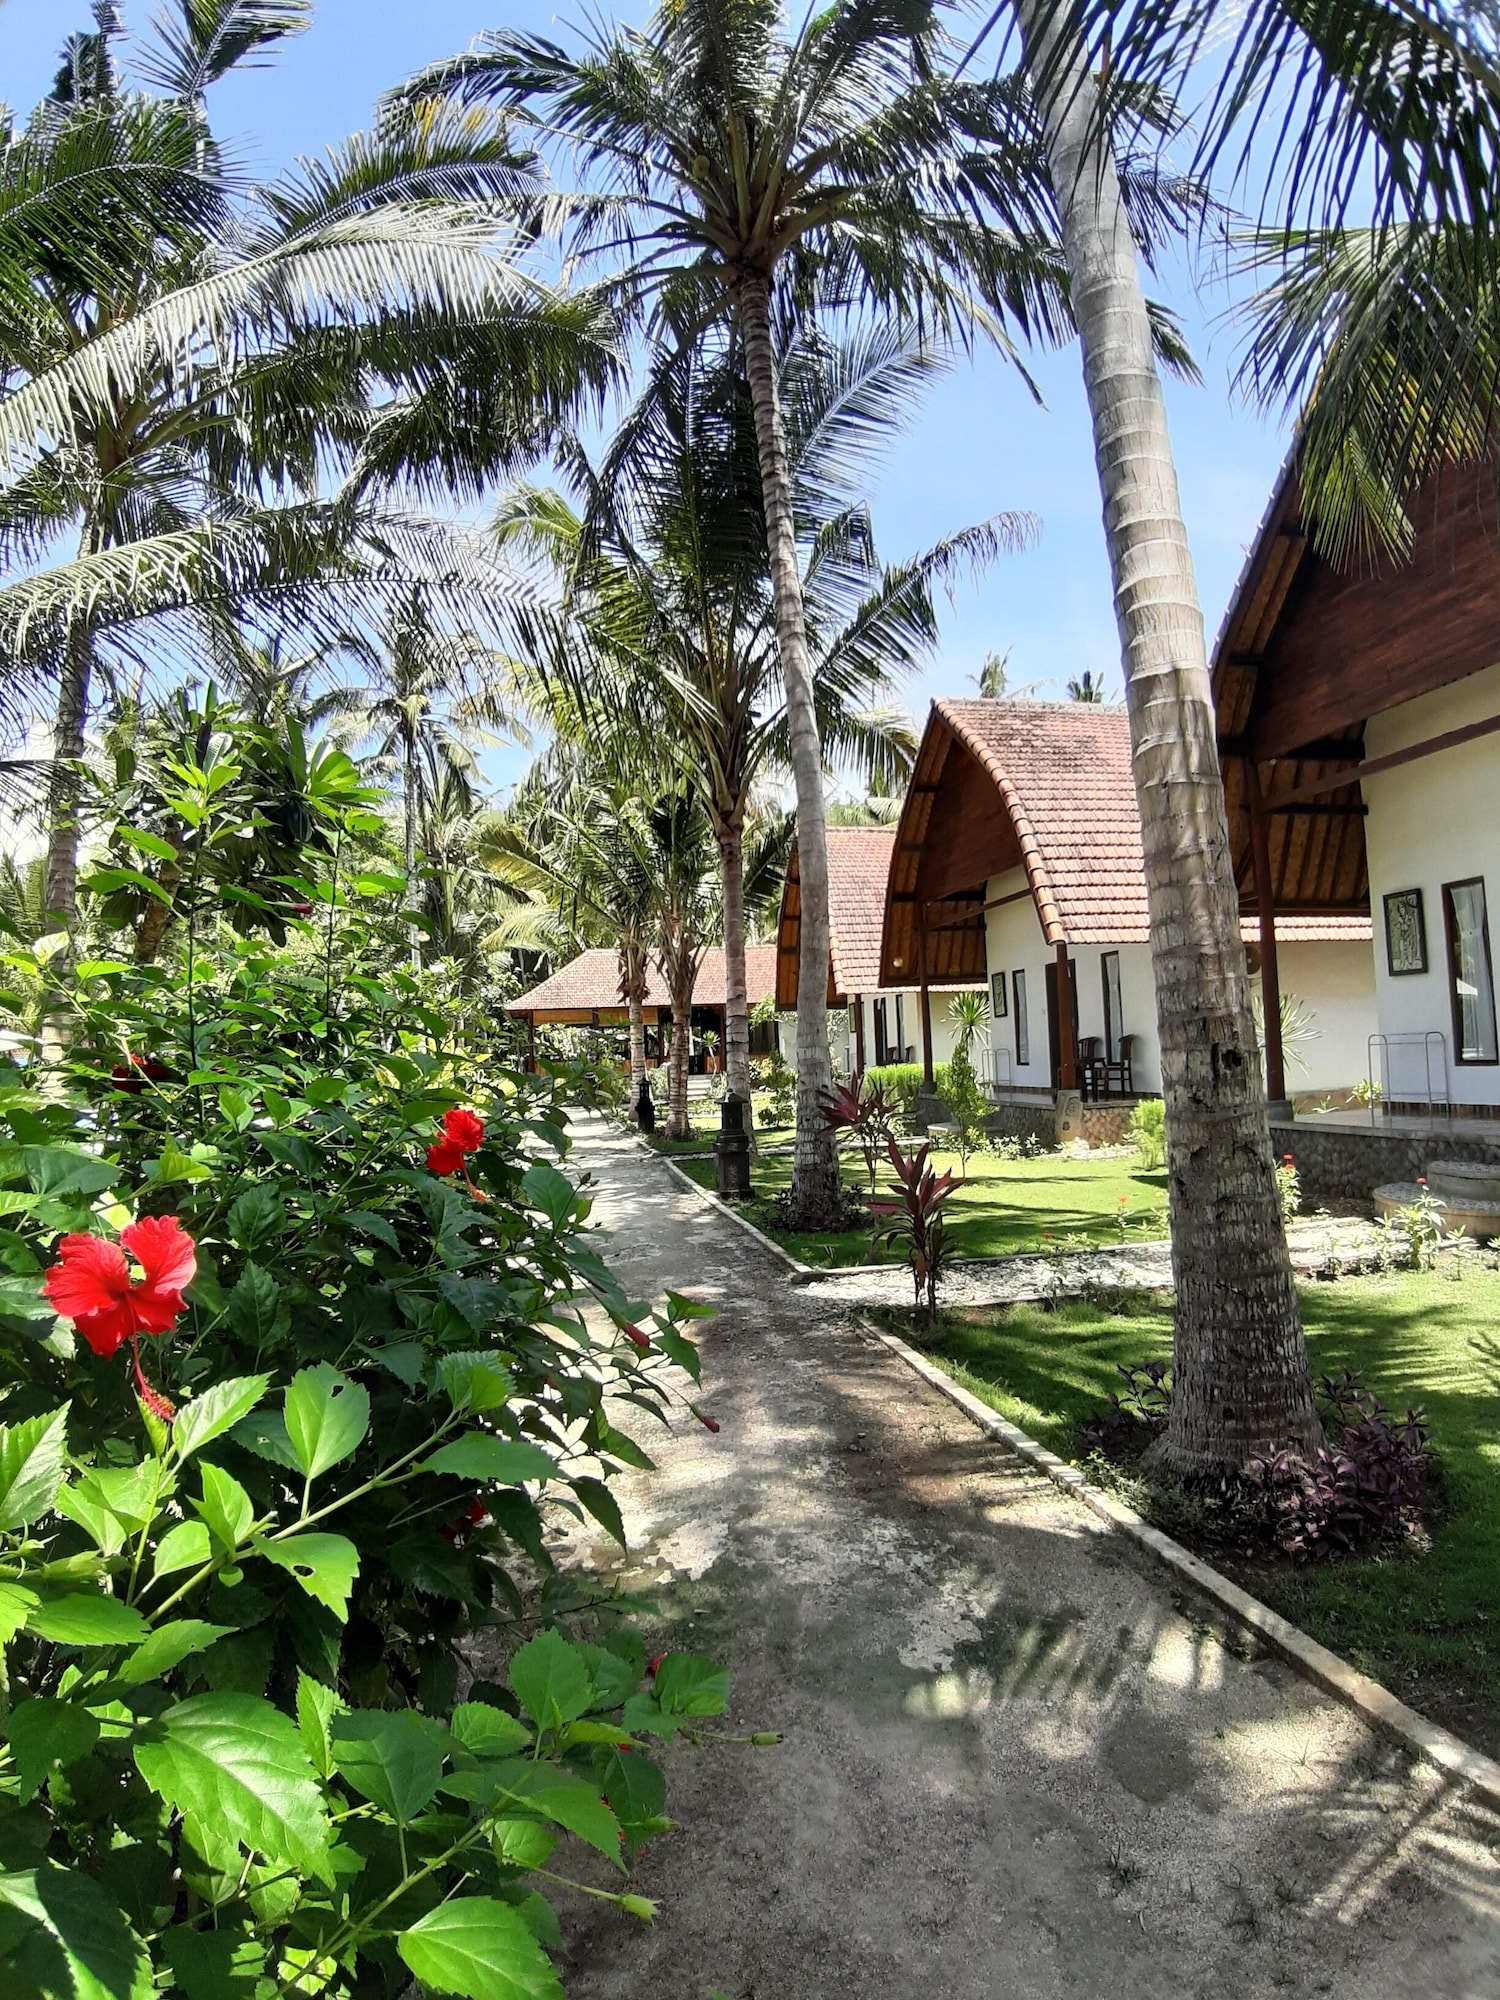 Astiti Penida Resort & Spa, Klungkung